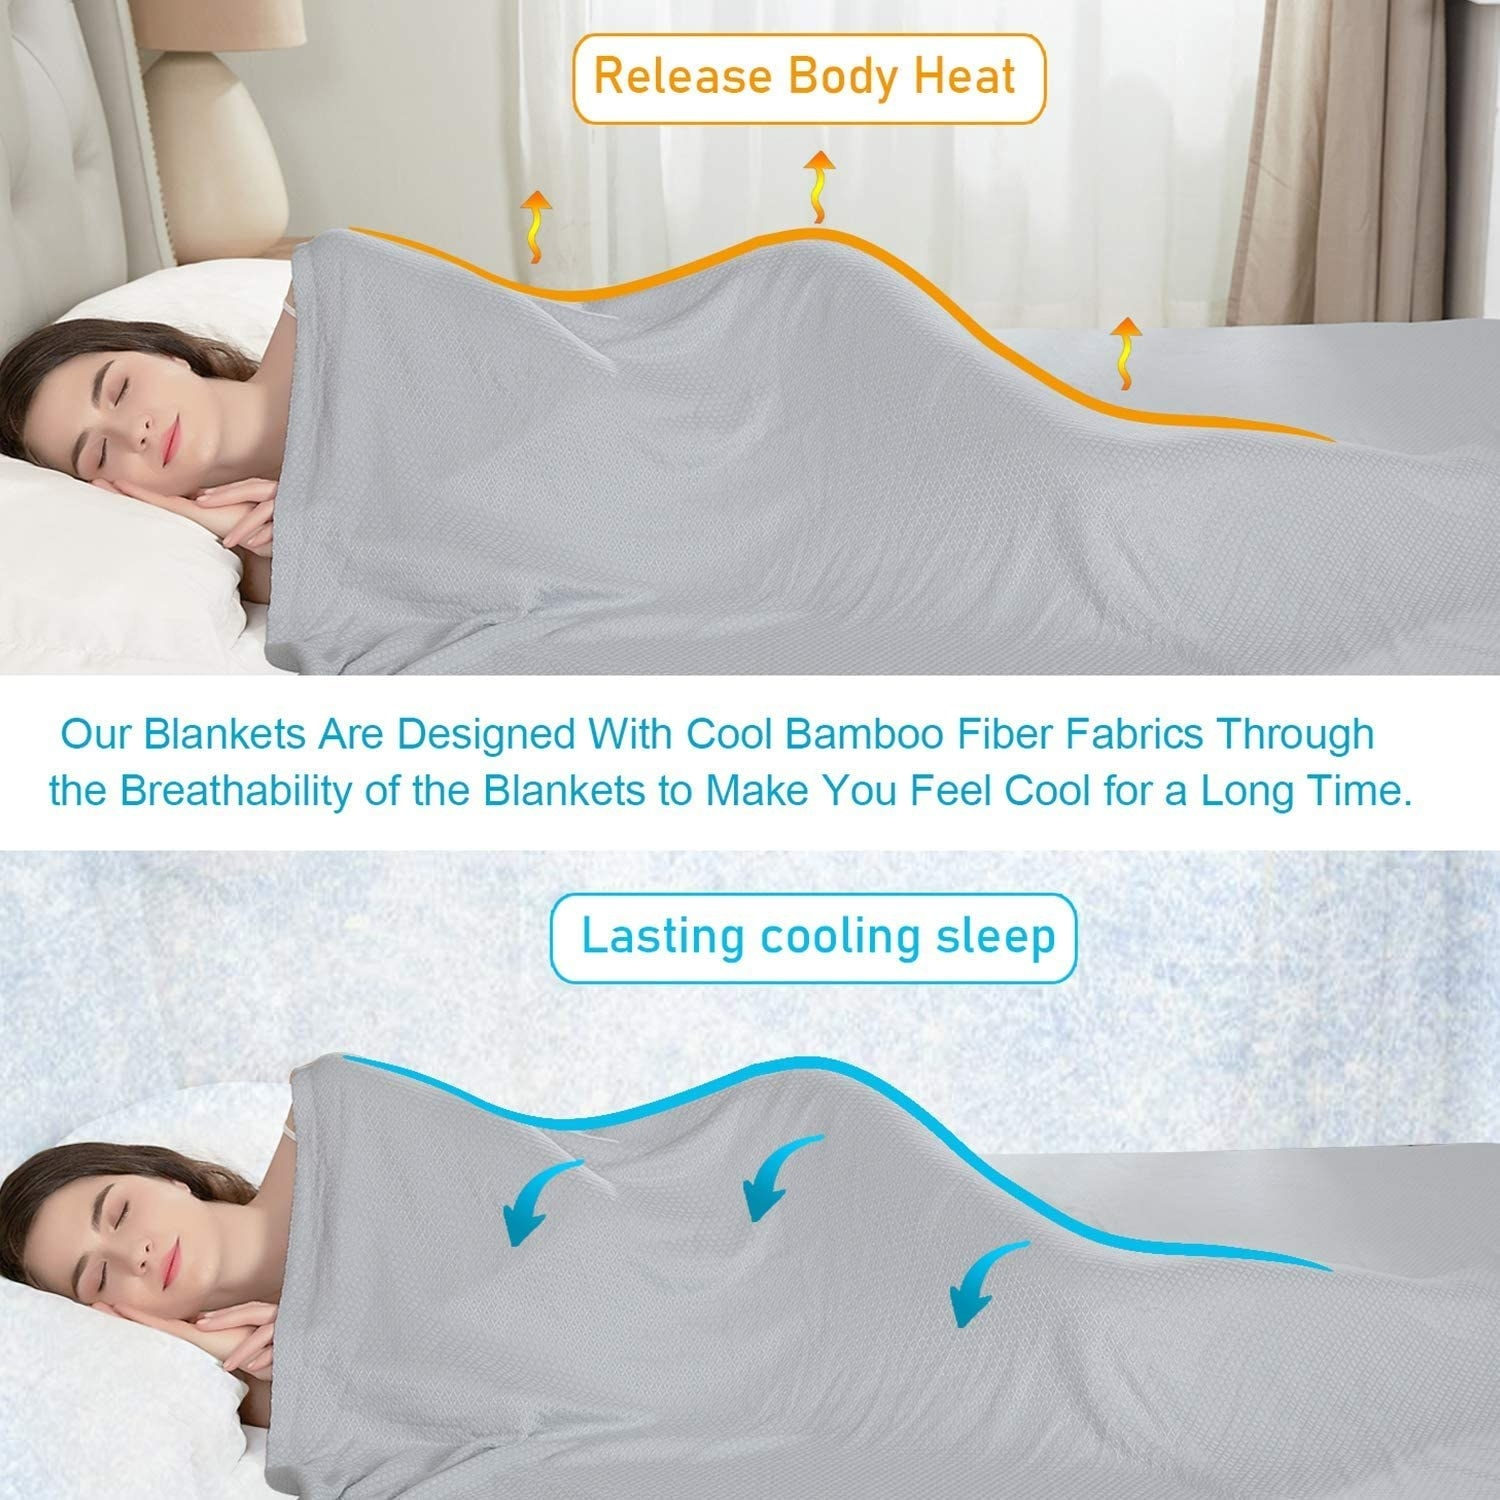 Model sleeping on a bed under the blanket with graphics showing how it releases body heat and is breathable to keep you cool when sleeping